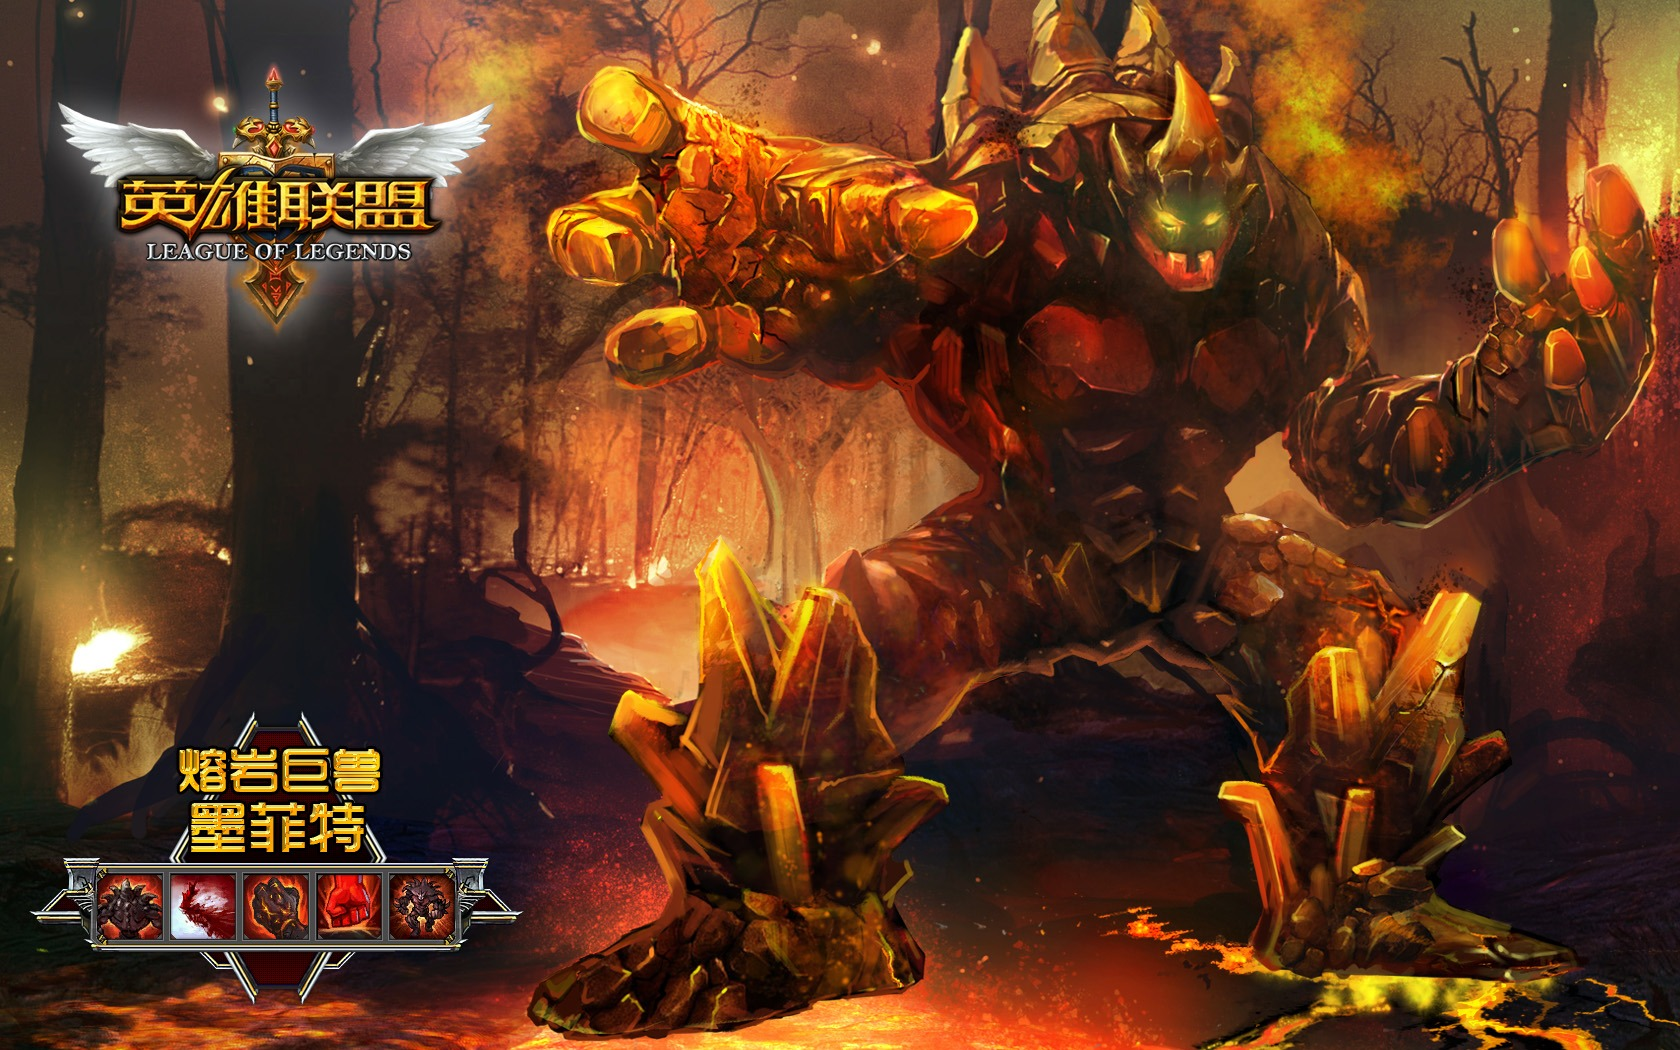 how to change leage of legends download location